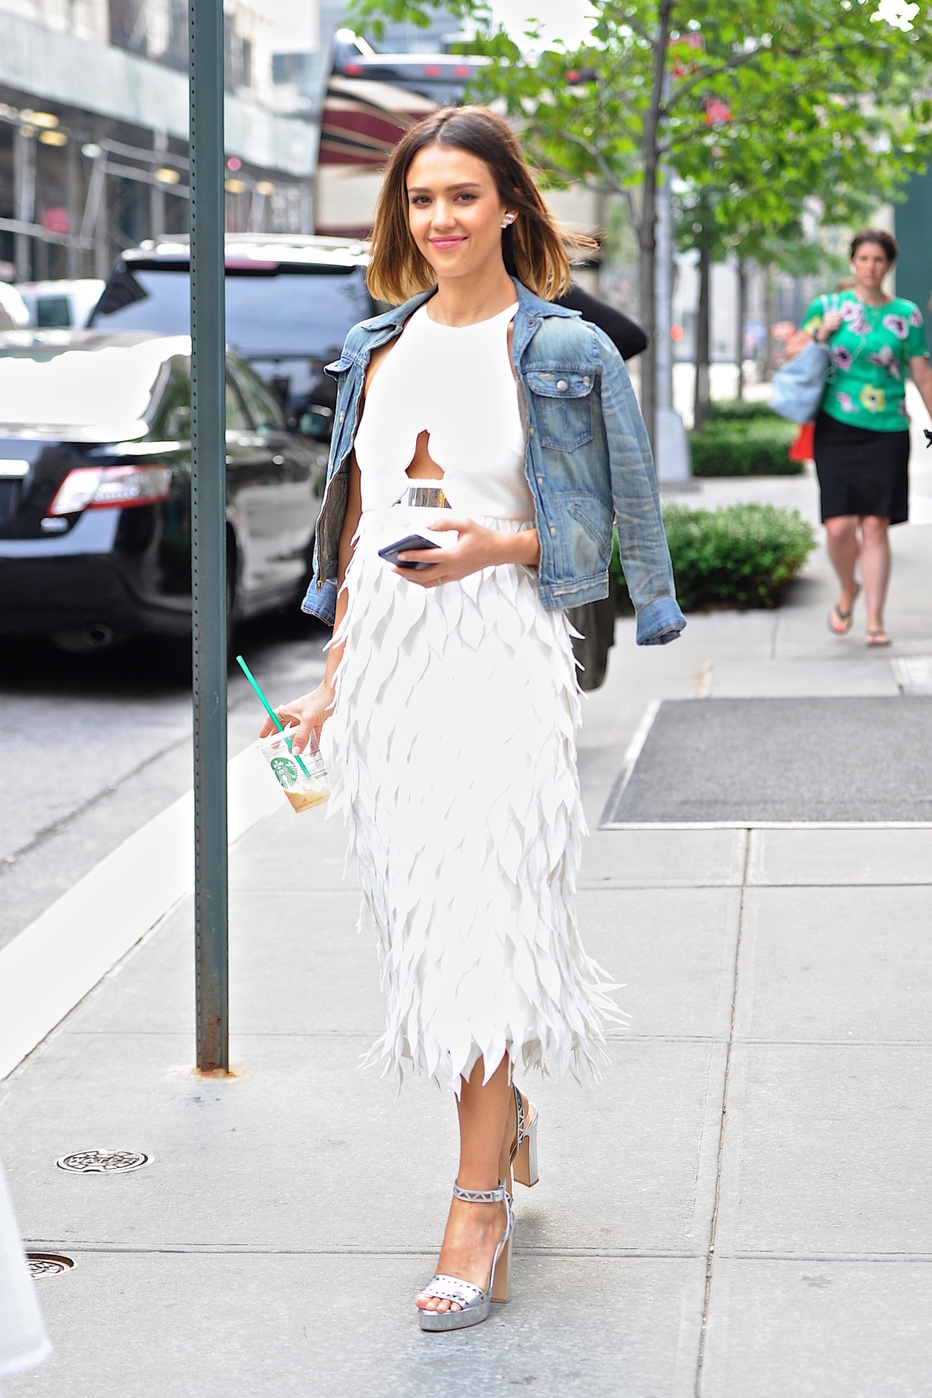 Jessica Alba - The Budget Babe | Budget Fashion & Style Blog